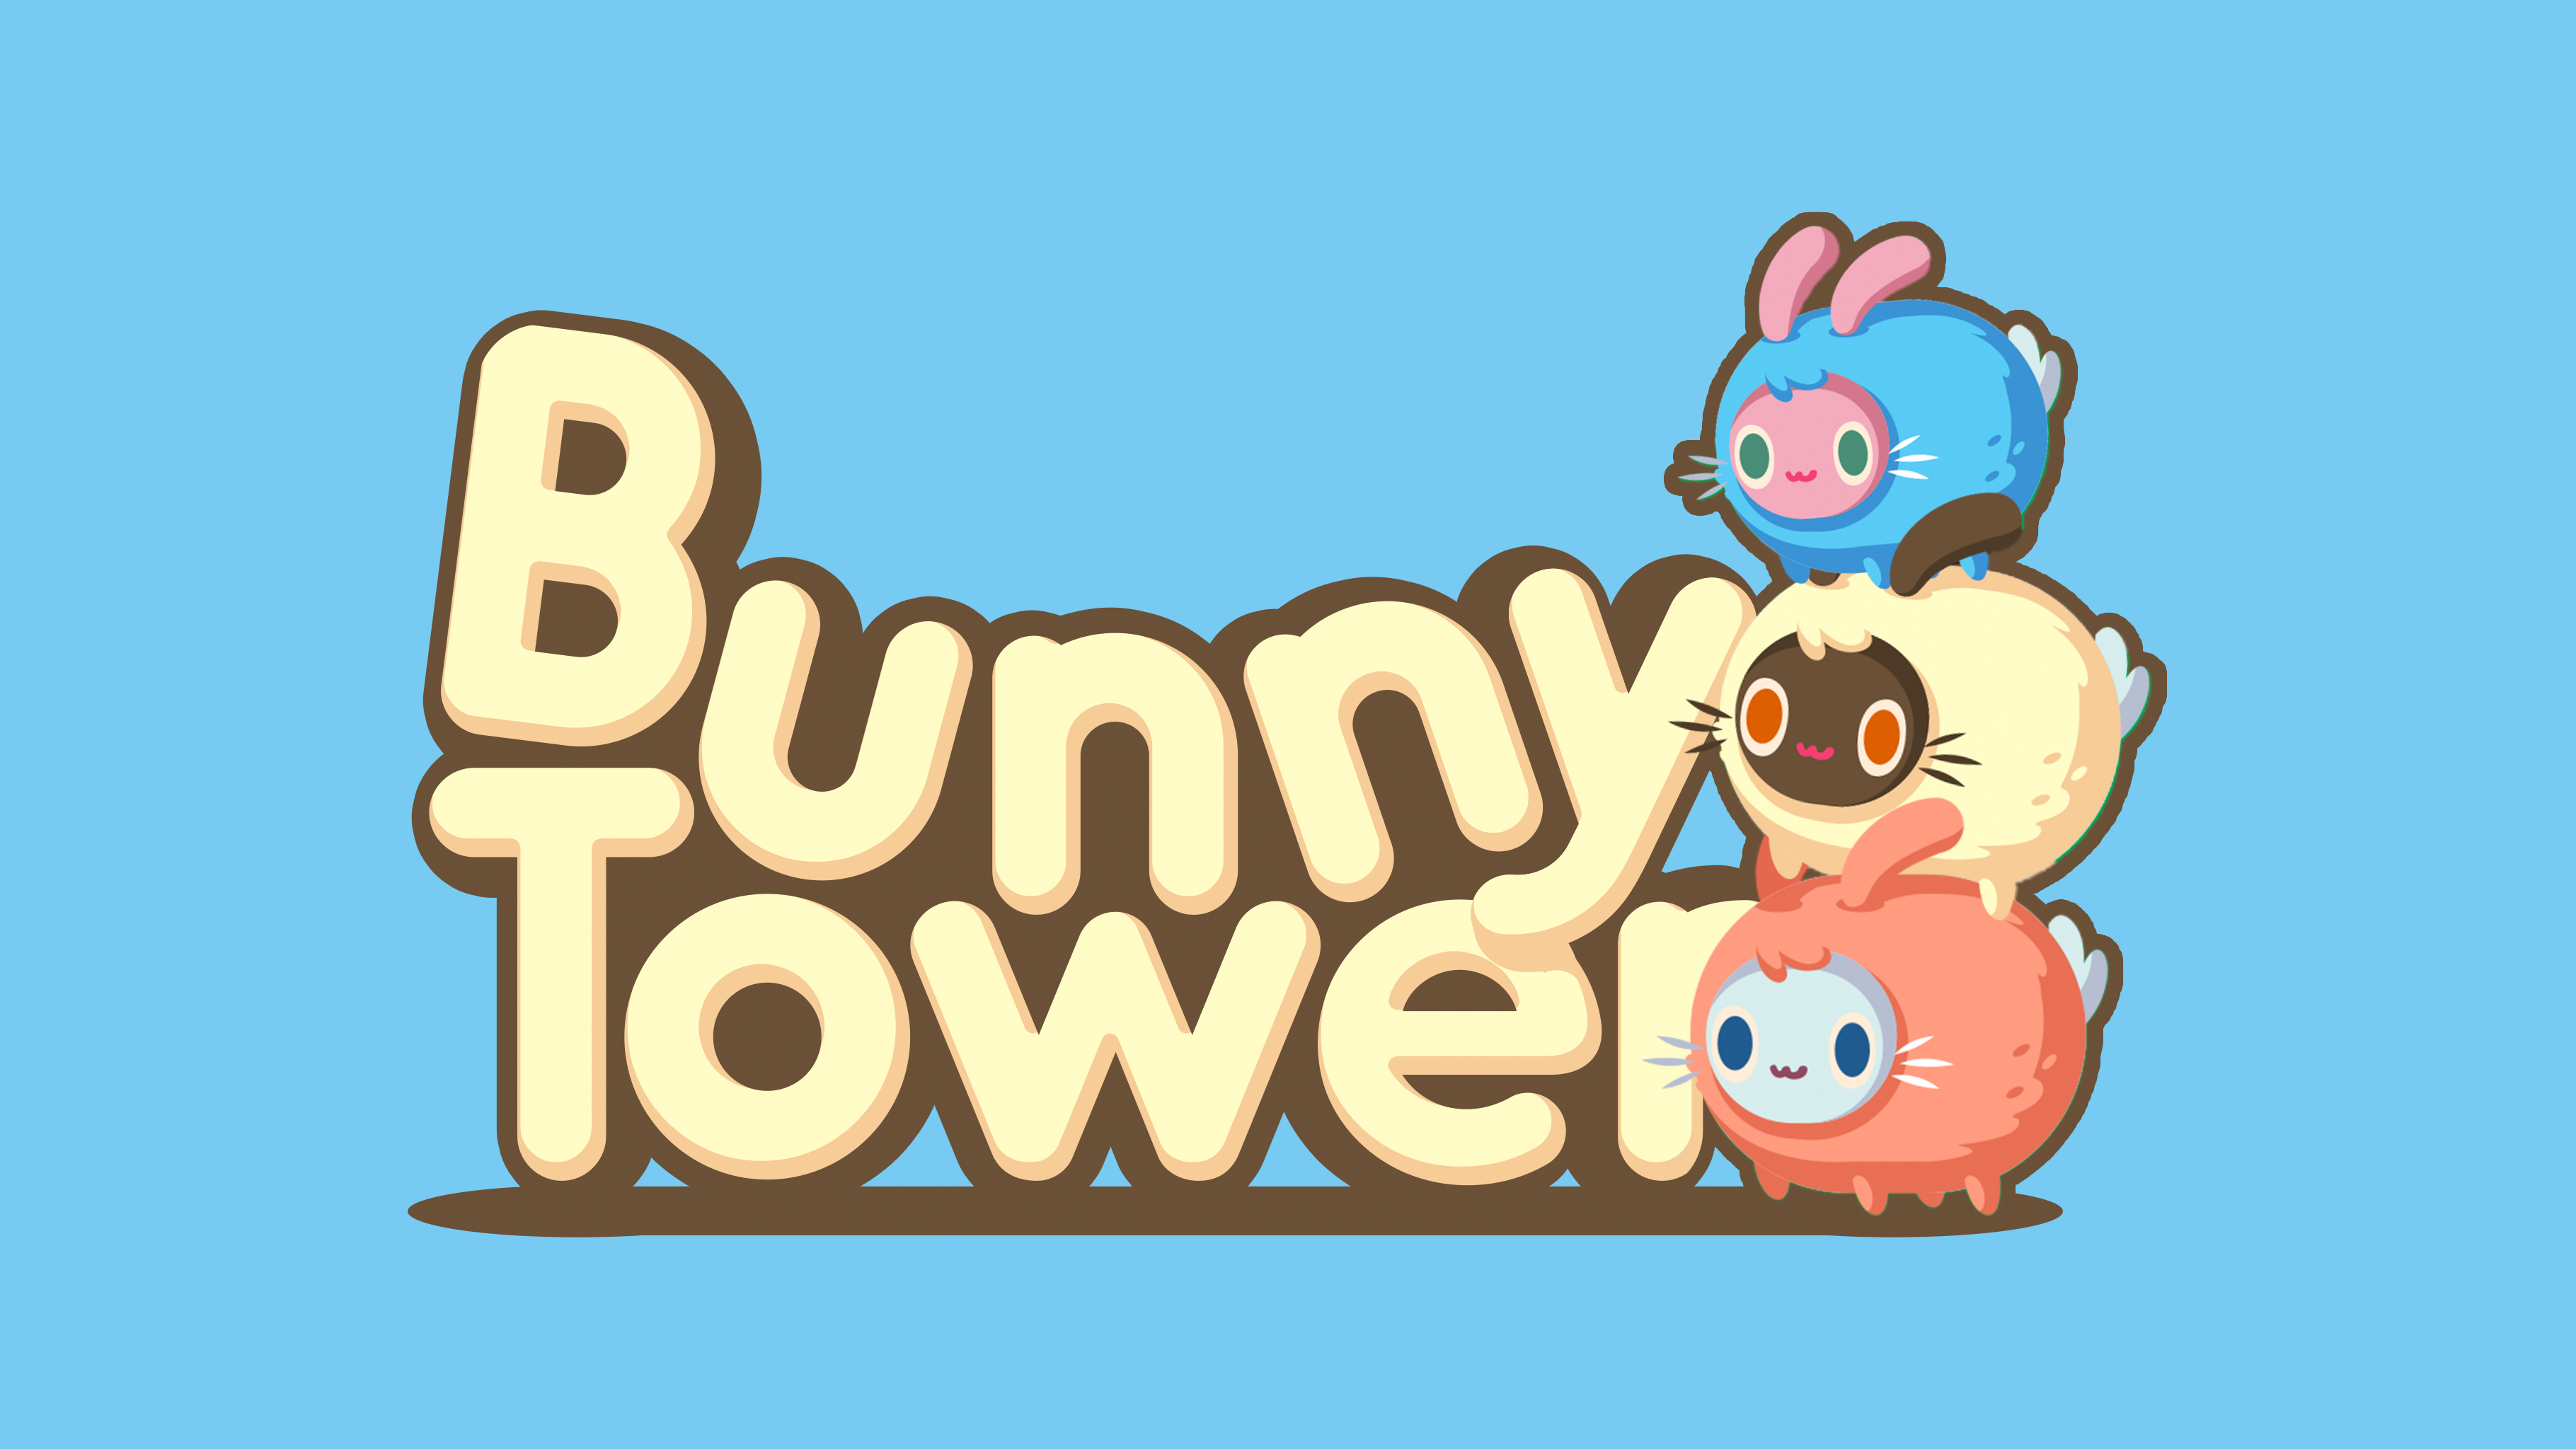 Bunny Tower